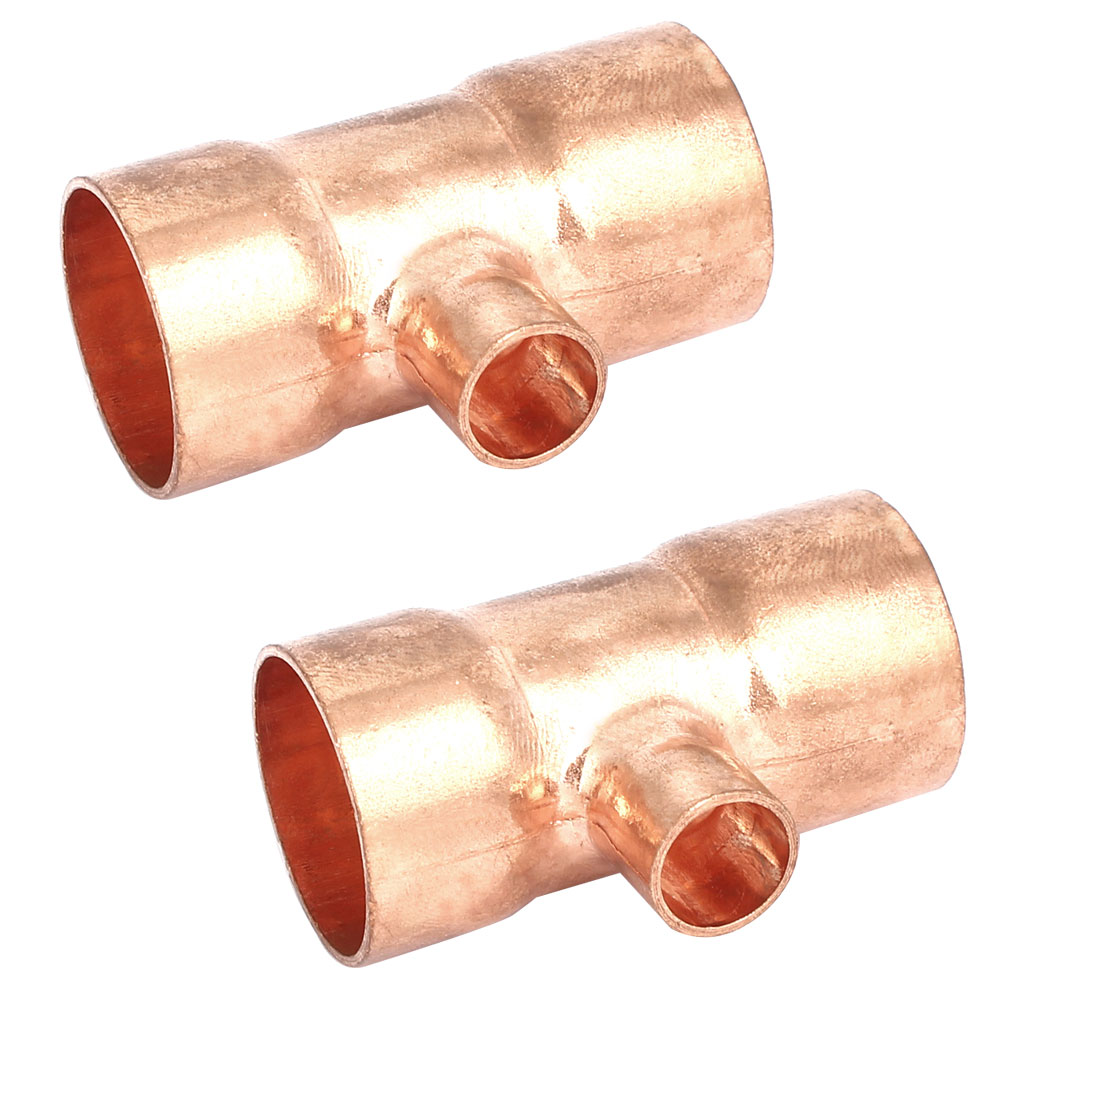 28.6mmx12.7mm Copper Tee Reducing Fitting Air Conditioner Plumbing Accessory 2pcs